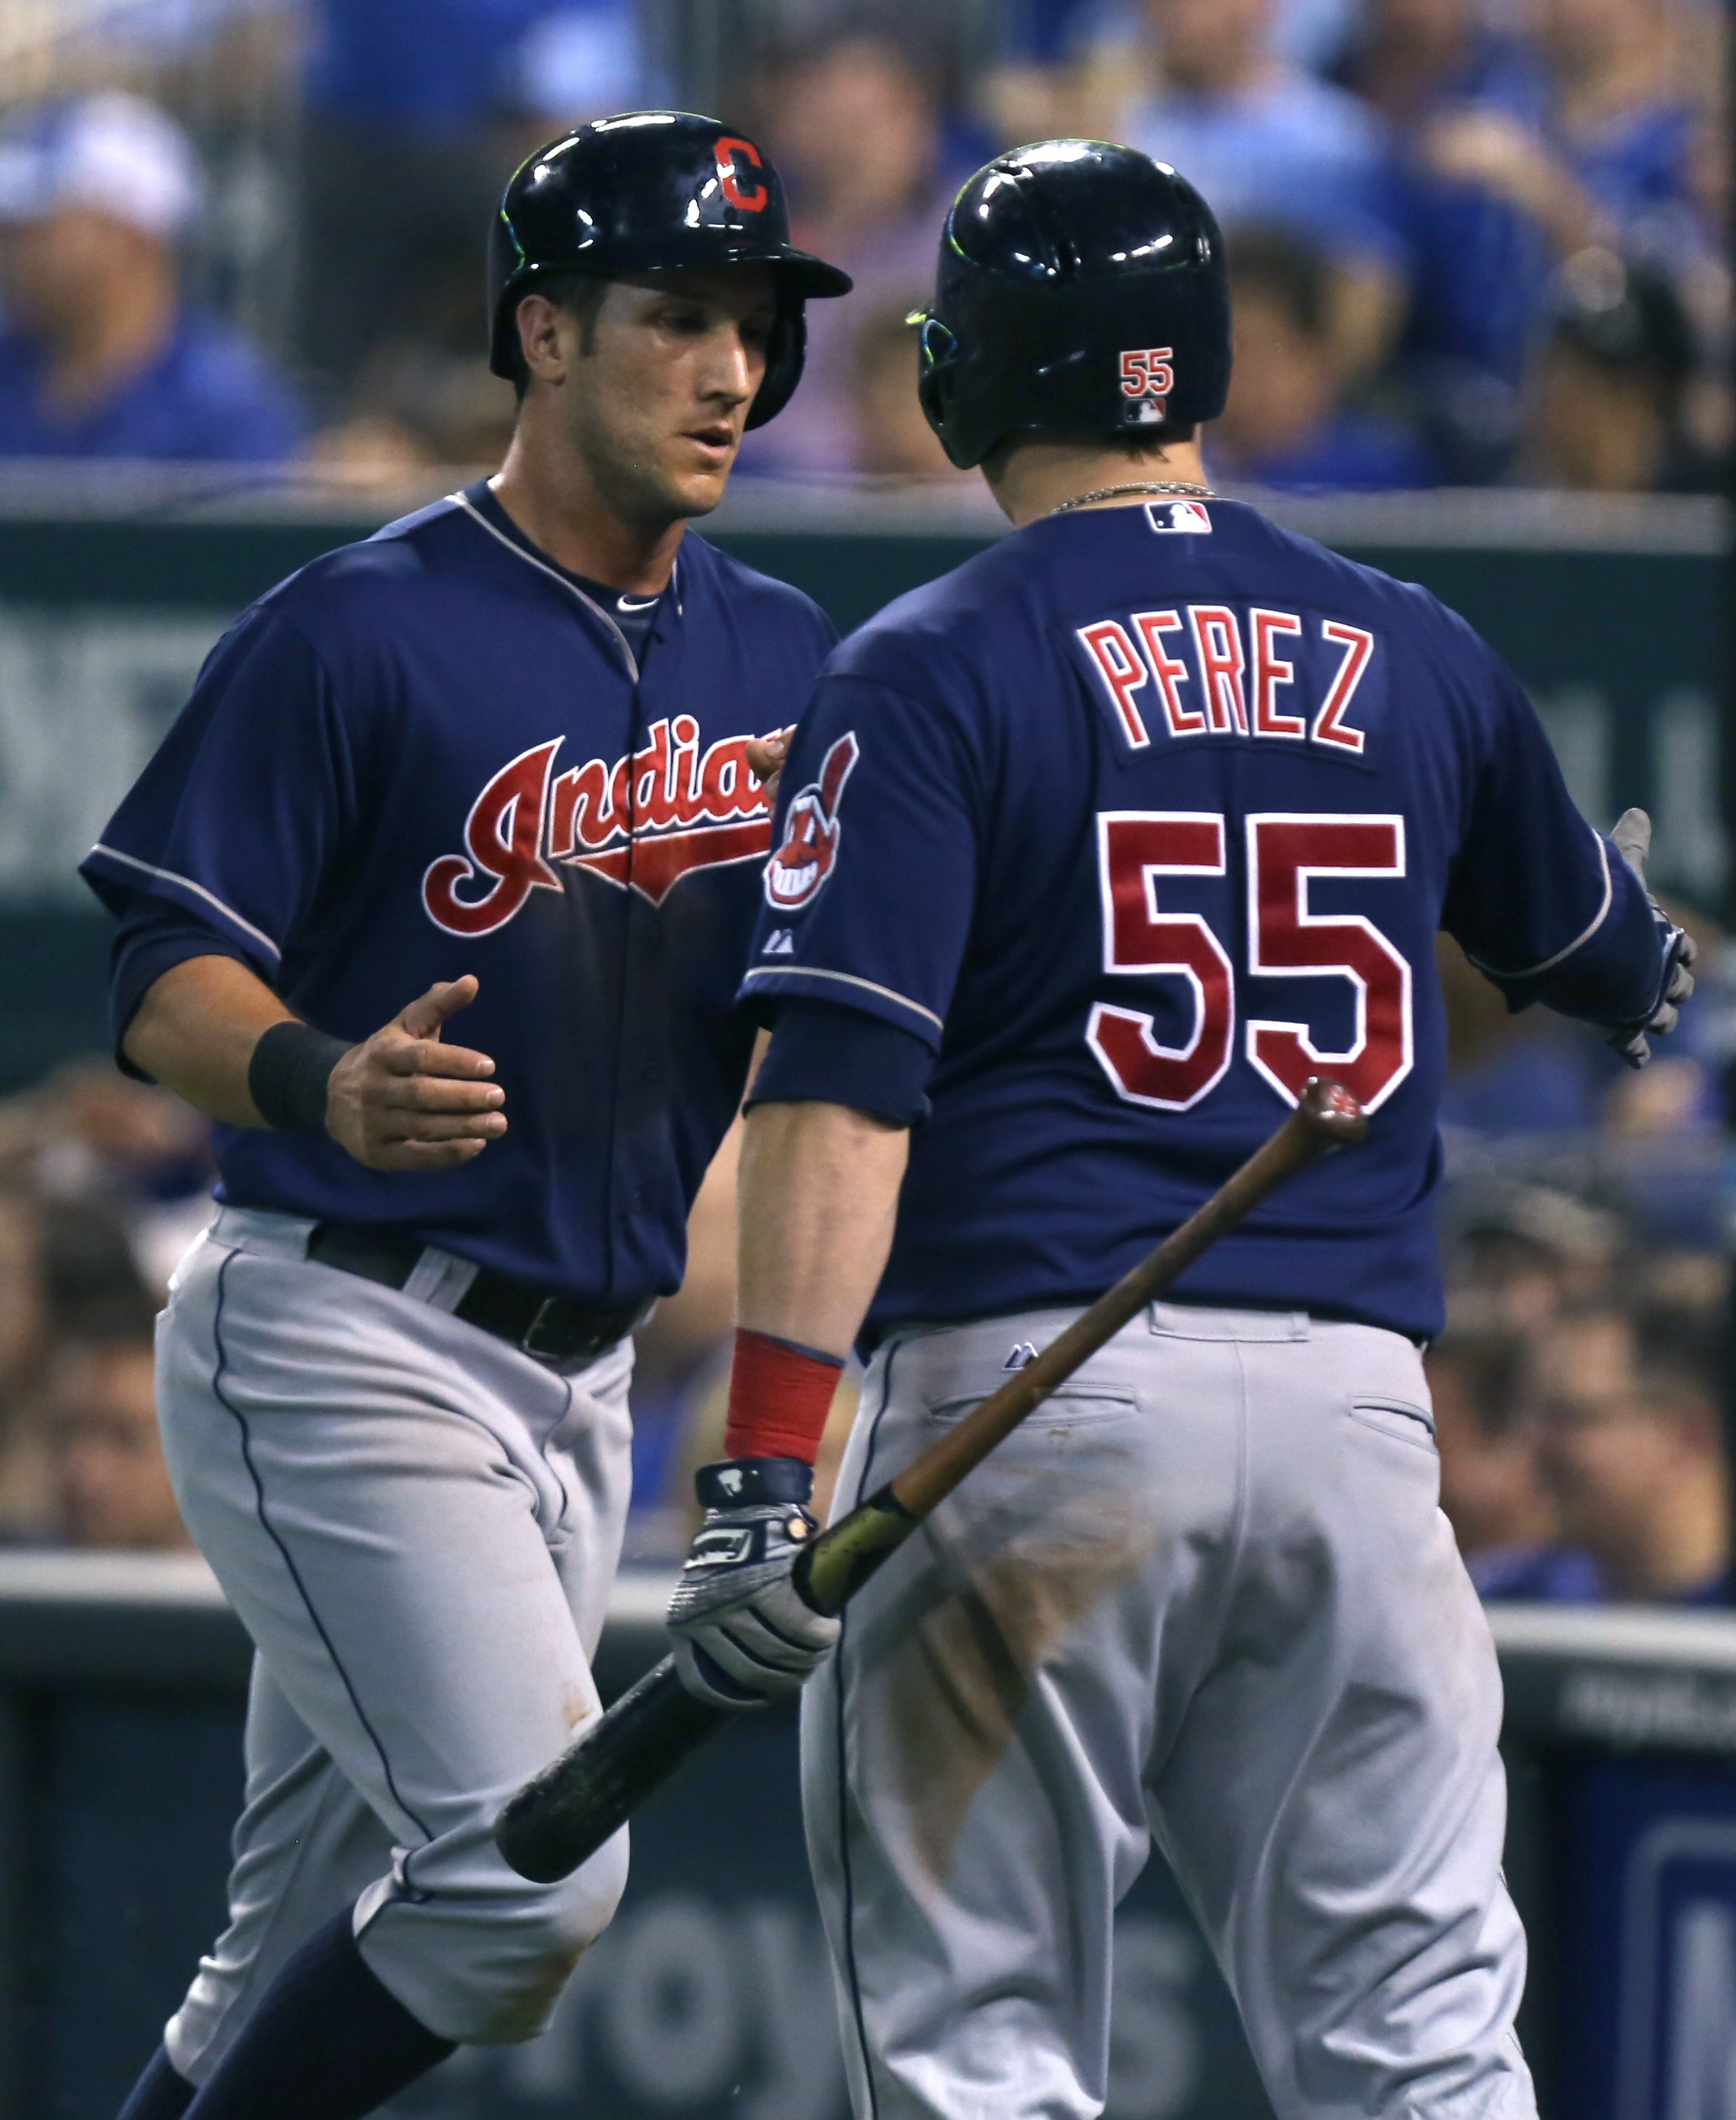 Where will this Tribe duo rank in 2016?